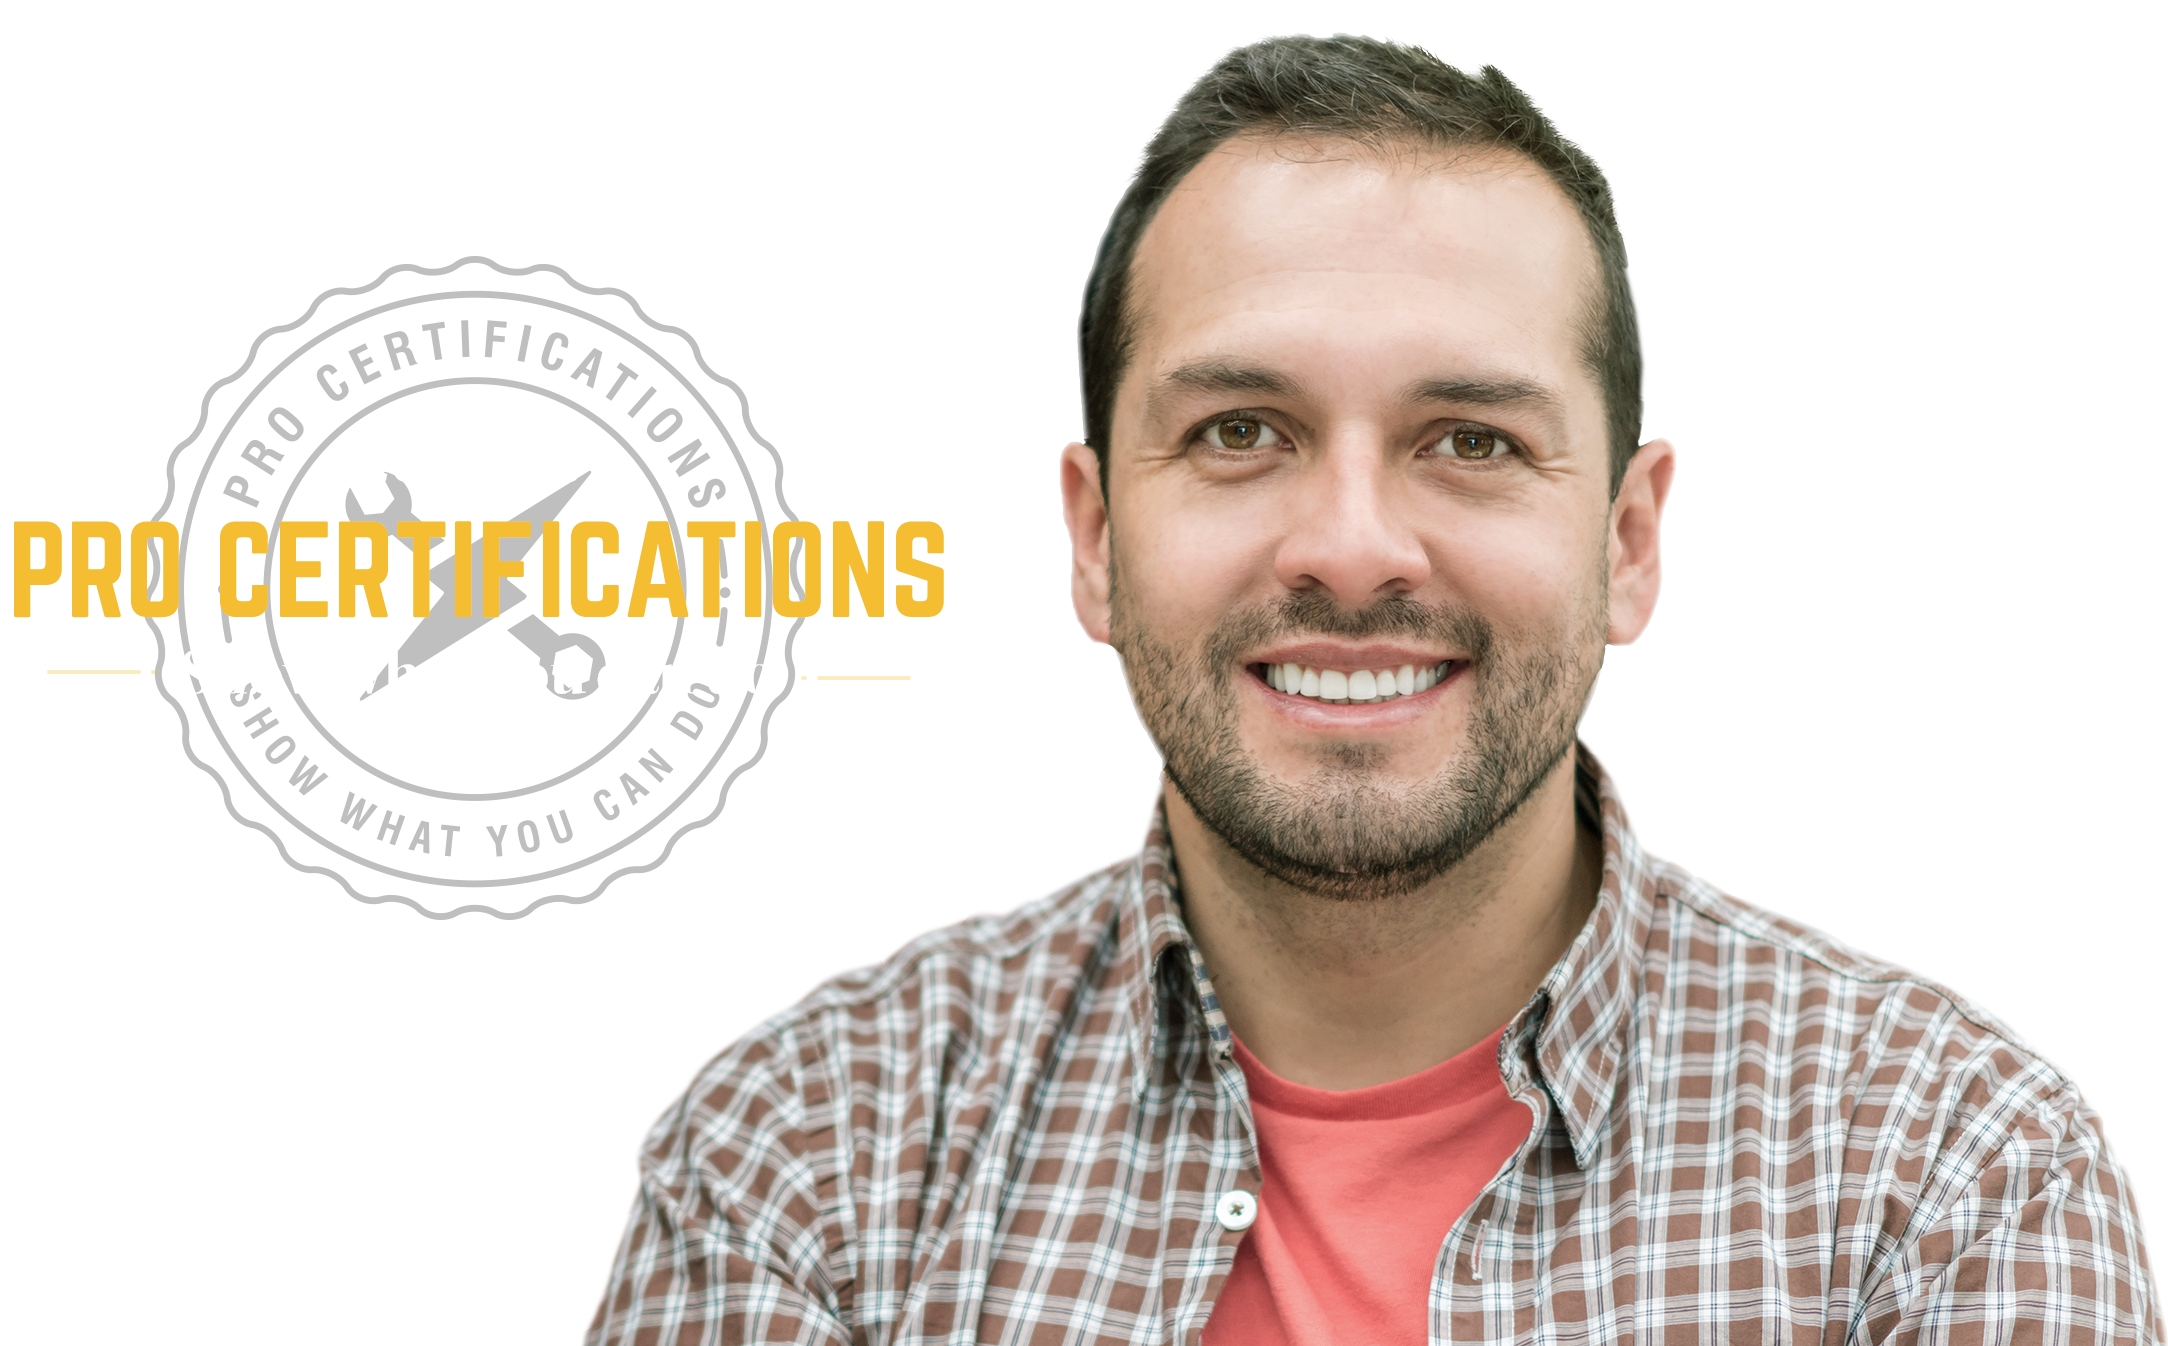 TestOut Pro Certifications - Show What You Can Do